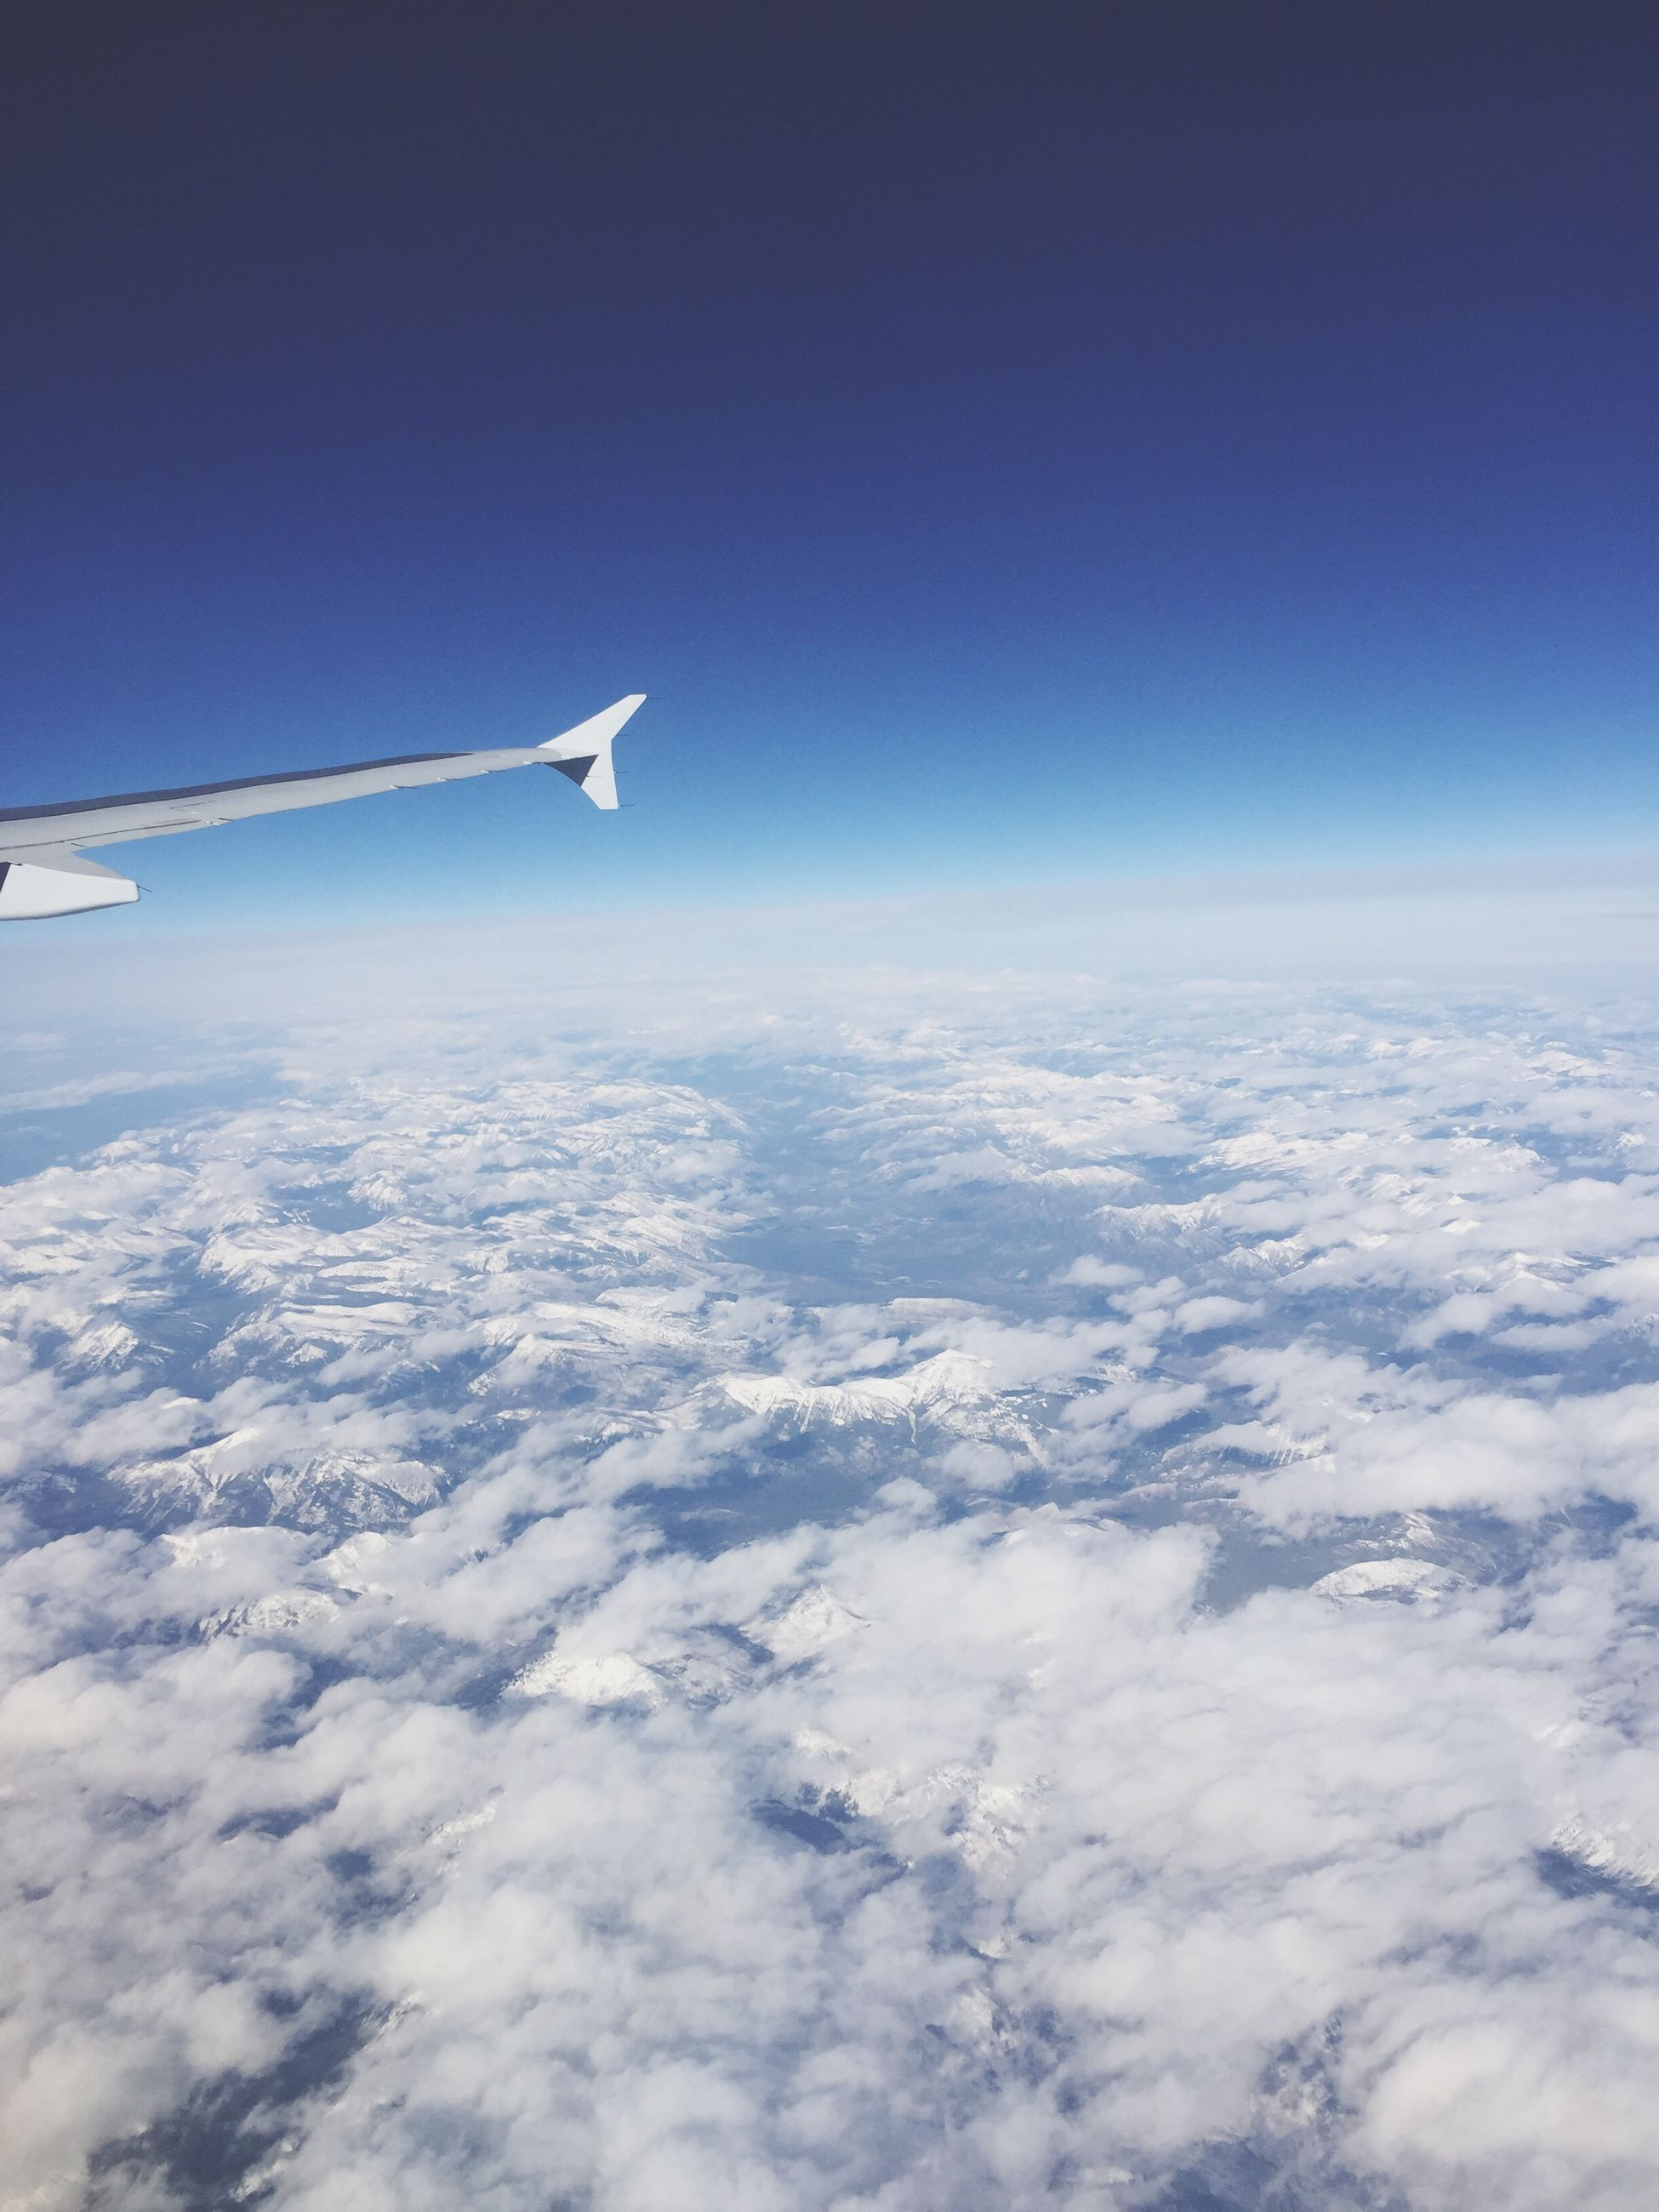 aerial view, flying, airplane, blue, nature, travel, beauty in nature, cloud - sky, scenics, journey, sky, no people, snow, cold temperature, cloudscape, winter, outdoors, day, landscape, airplane wing